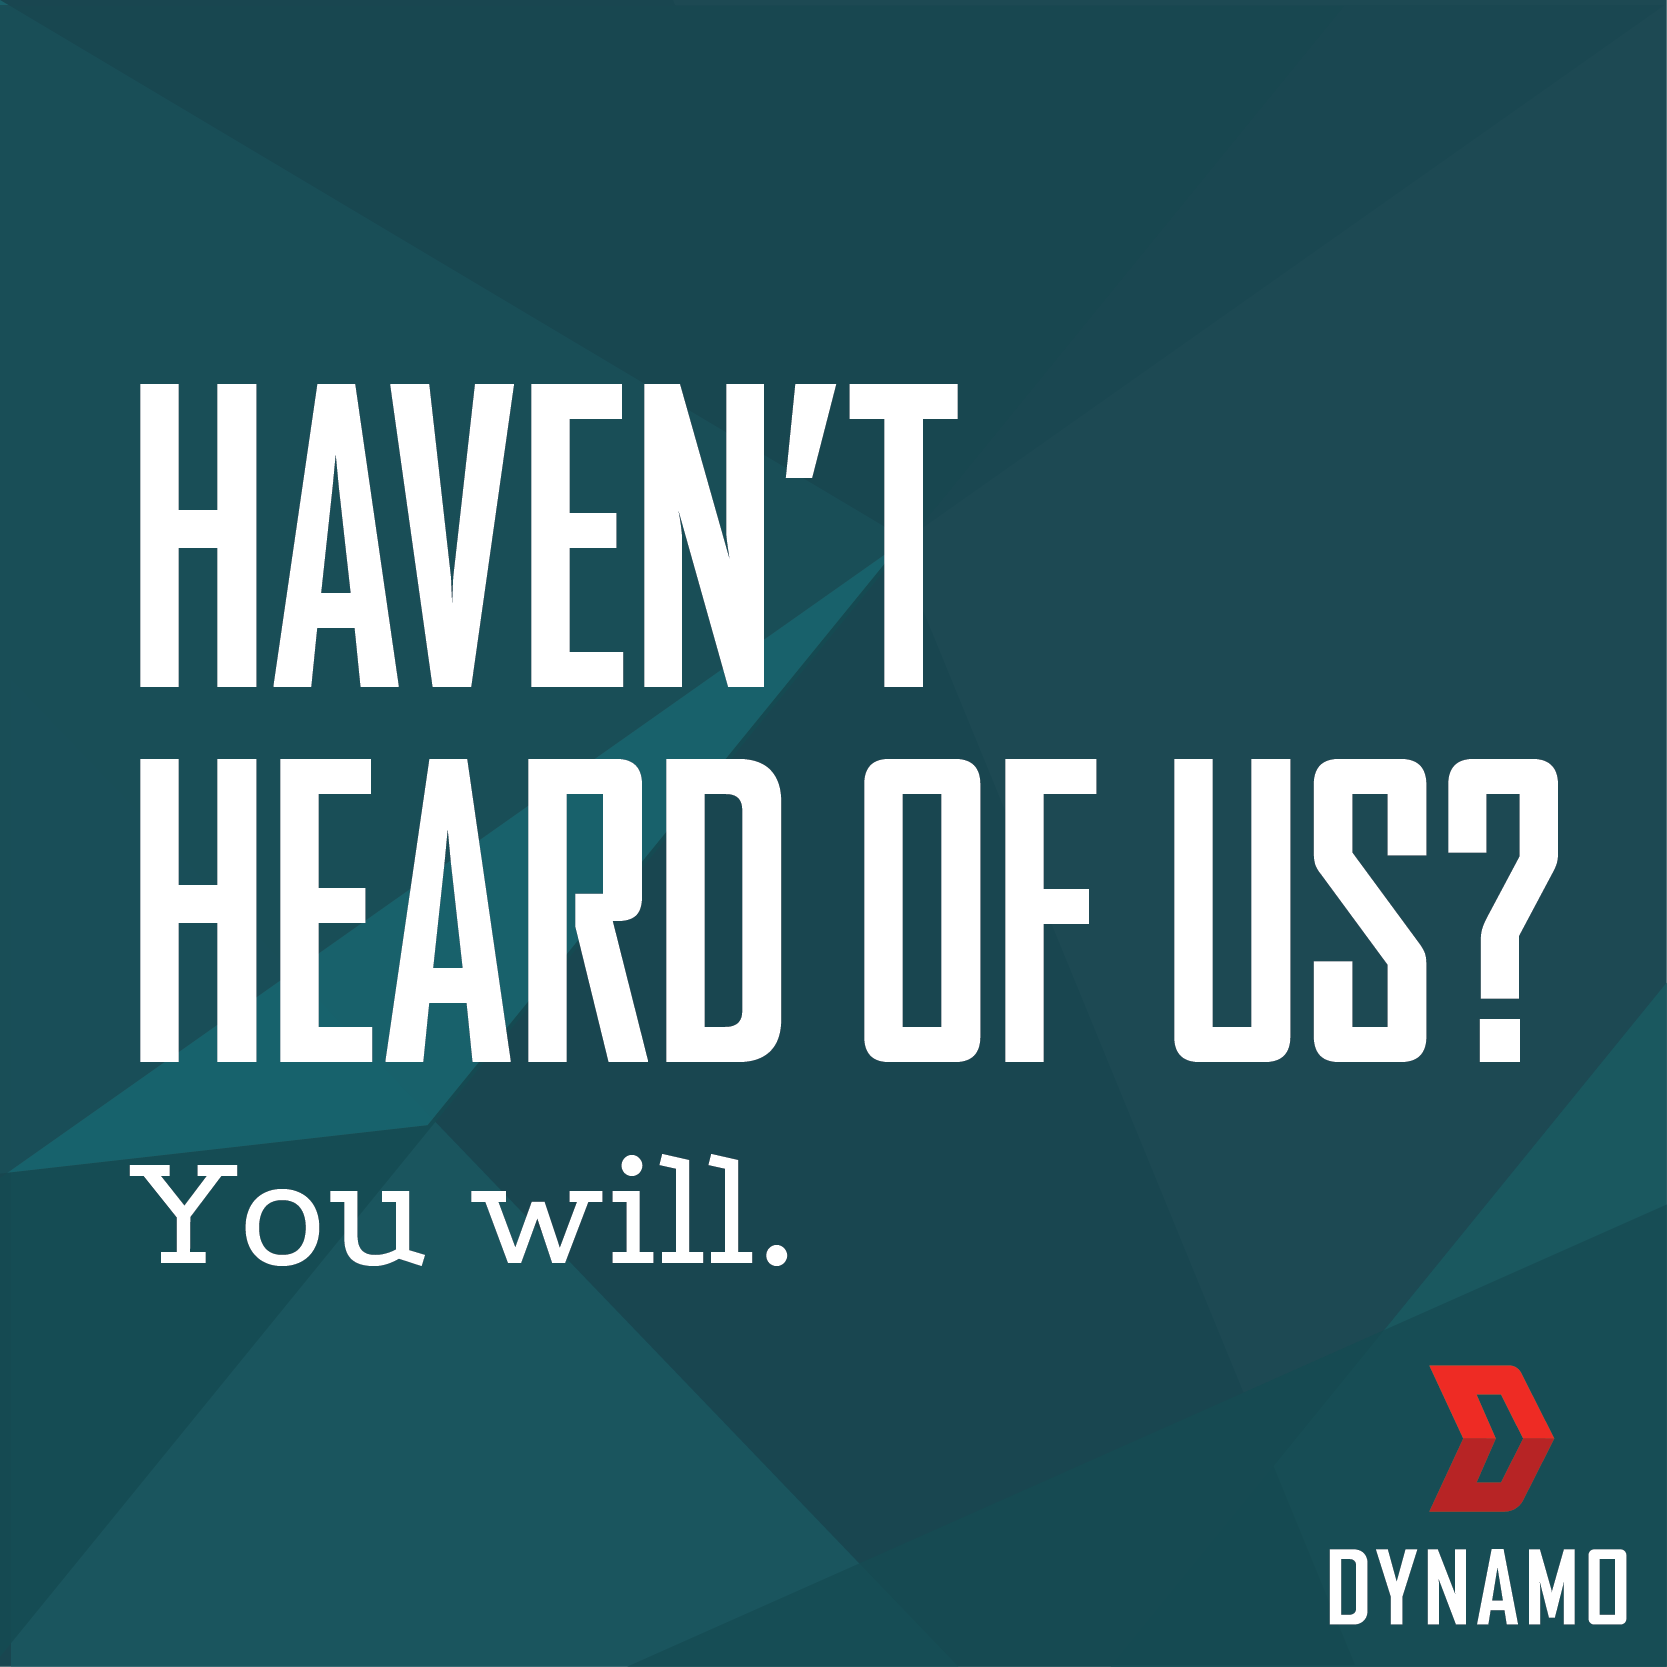 You don't know us yet, but give it time. Soon, we'll be unforgettable. We are Dynamo and we're changing the future of logistics.